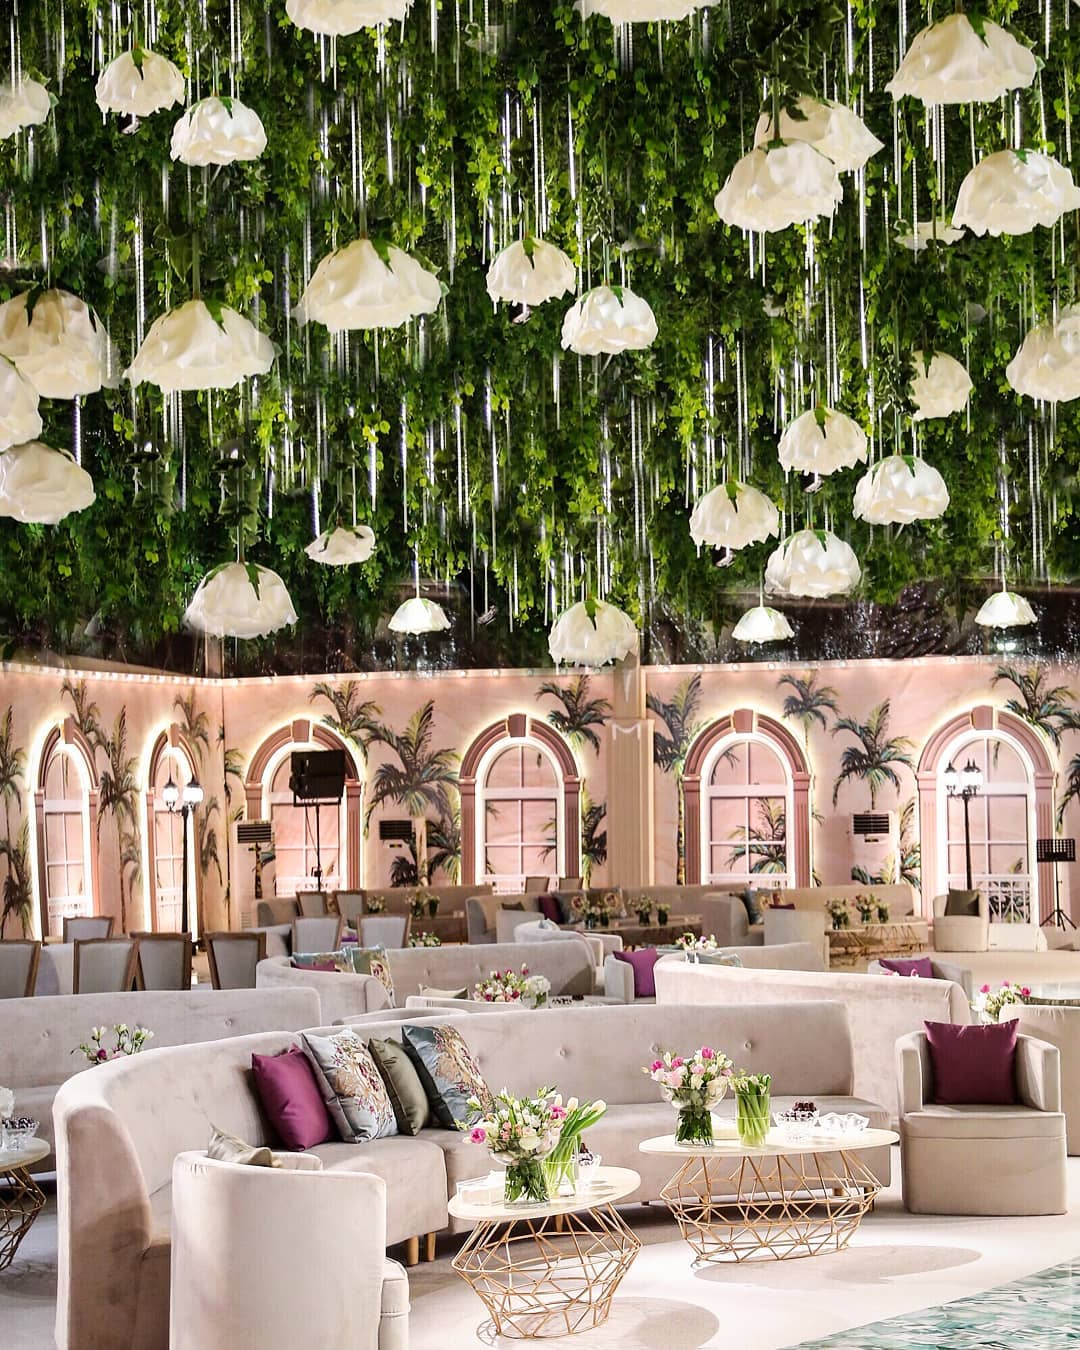 Stunning Ceiling Decor Ideas You Can Steal For Your Wedding!| beautiful green ceiling decor enamoured with huge inverted white fake floral embellishments | Ceiling decor ideas | Function Mania | White Floral Decor ideas | Wedding Reception Decor Ideas | Luxury Wedding Decor IDeas | Beautiful Decor Ideas